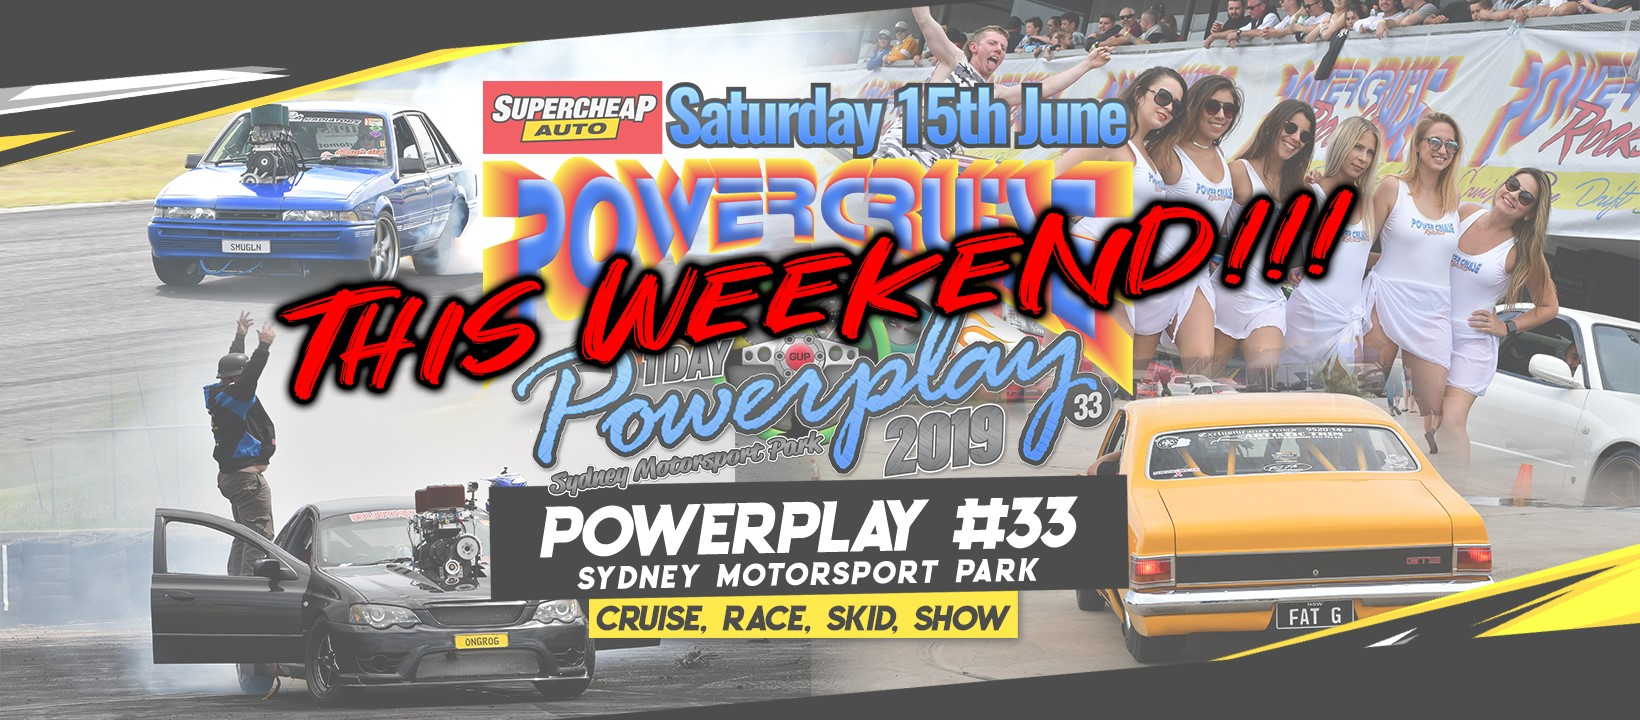 Powerplay is coming to Sydney 15th June – Get event ready!